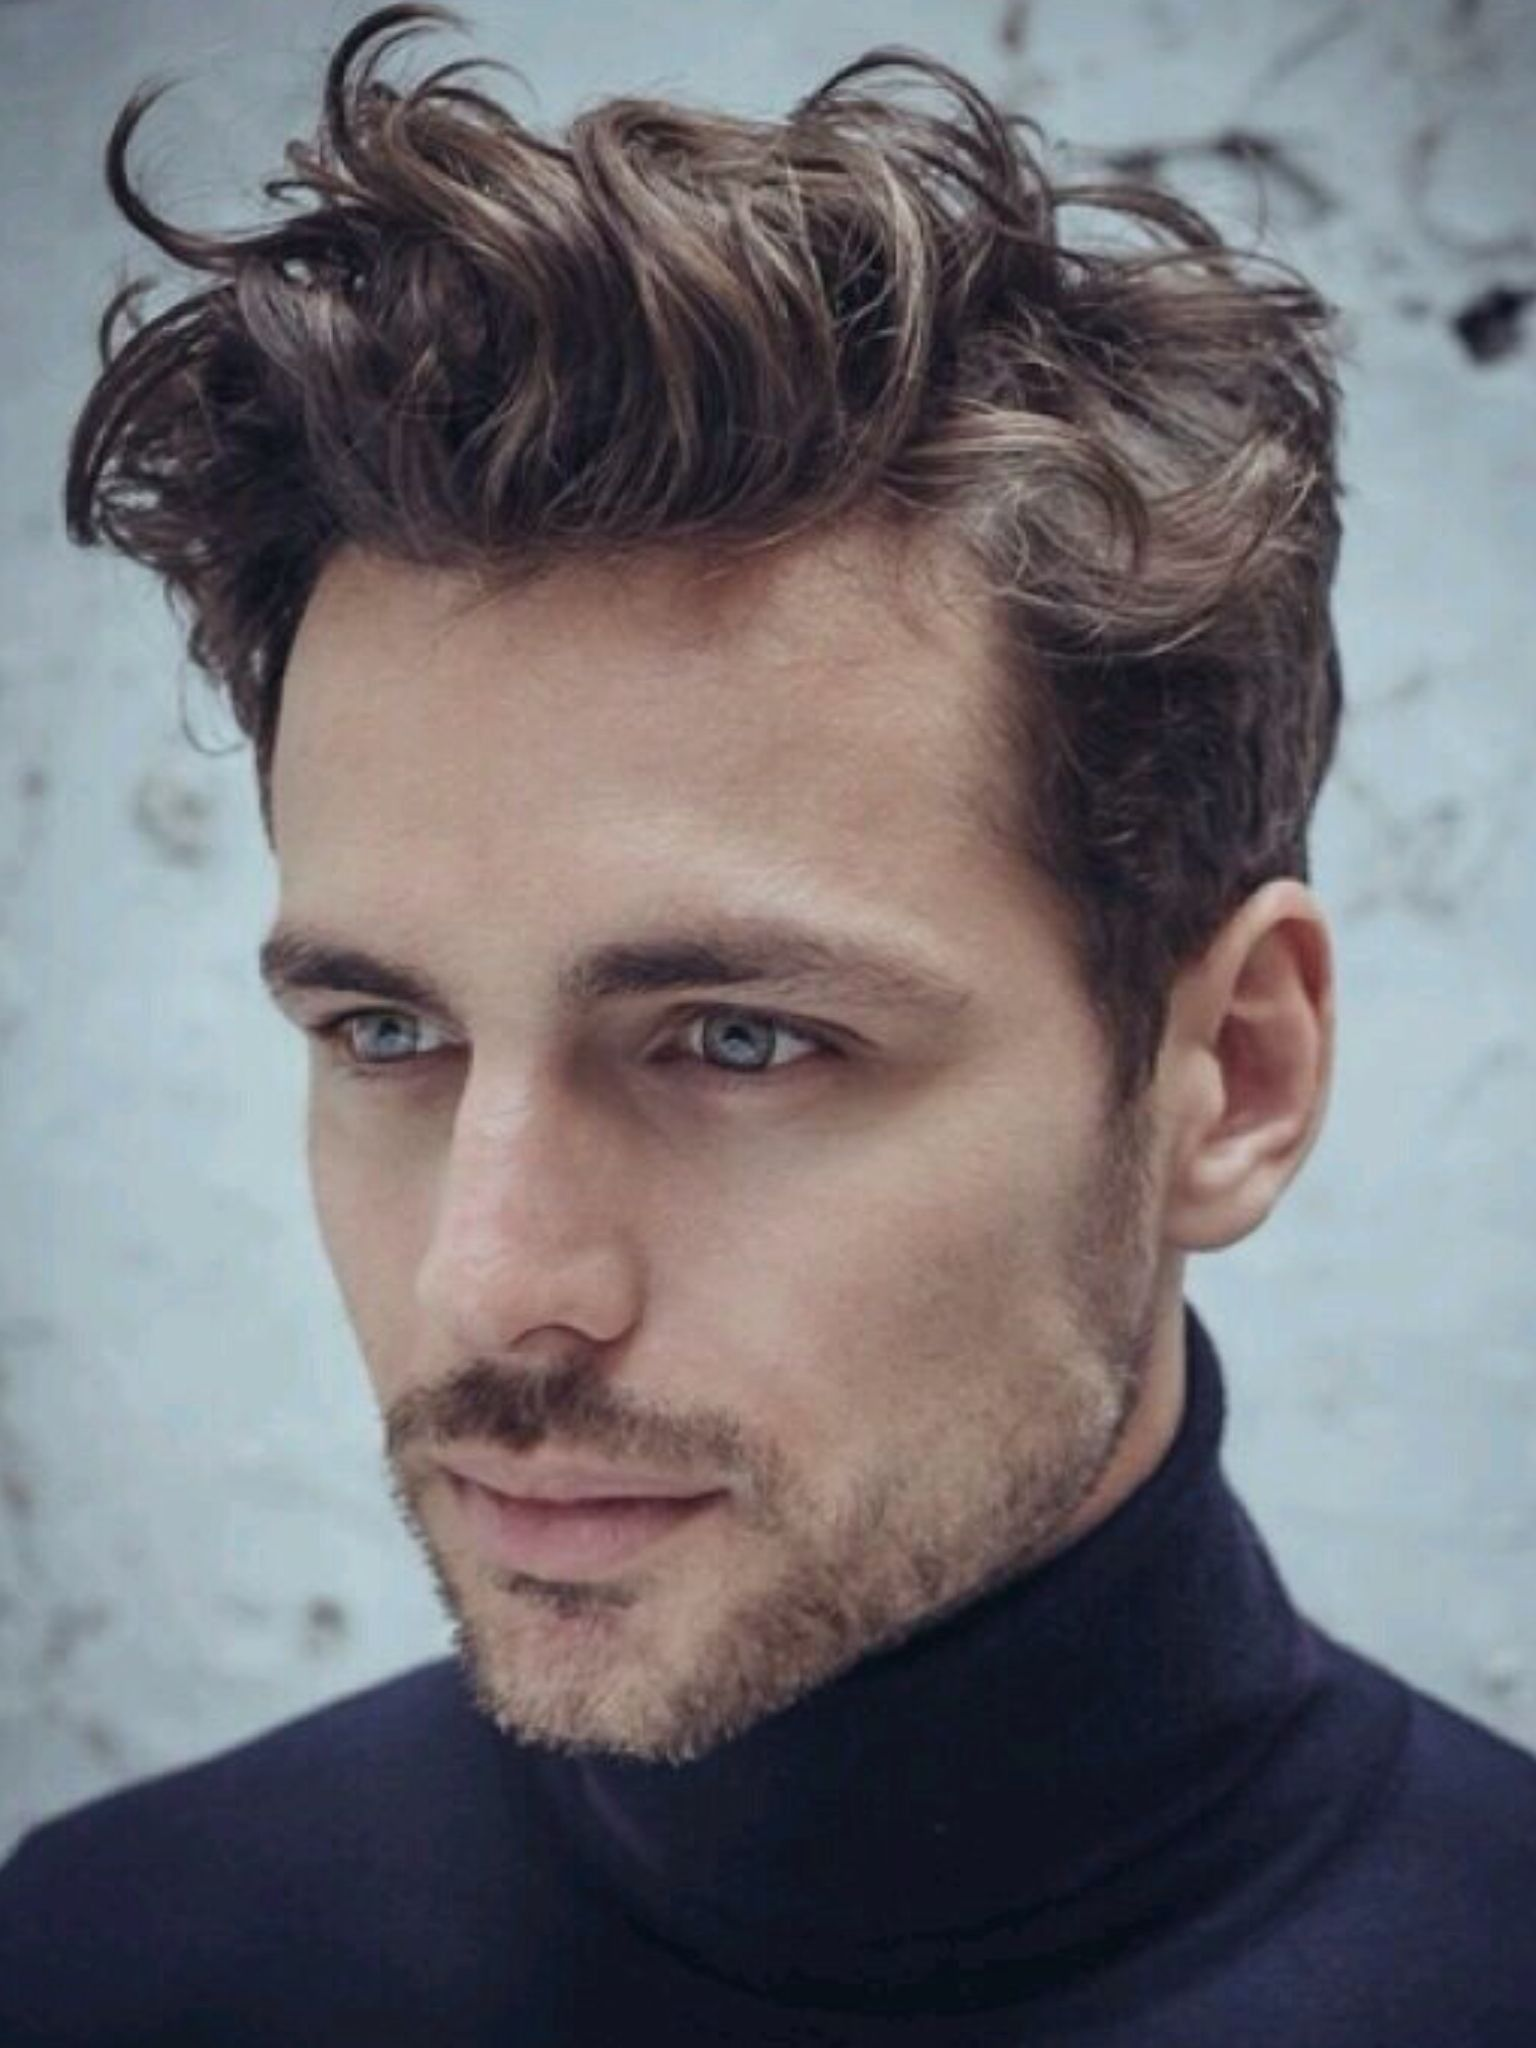 77 Best Curly Hairstyles Haircuts For Men 2020 Trends Curly Hair Men Curly Hair Styles Haircuts For Men